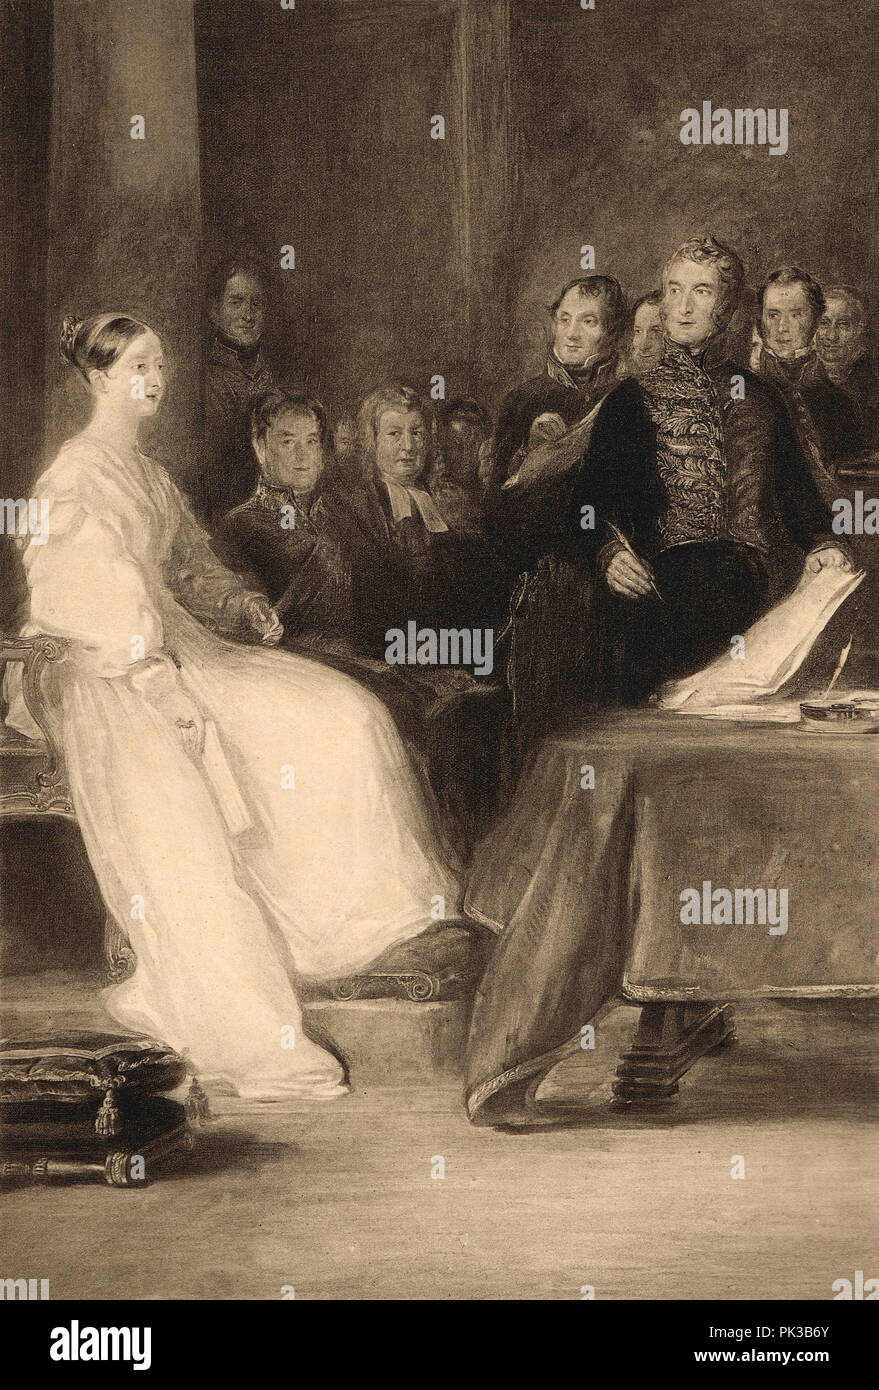 Queen Victoria's first council, 20 June 1837, Red saloon, Kensington Palace - Stock Image